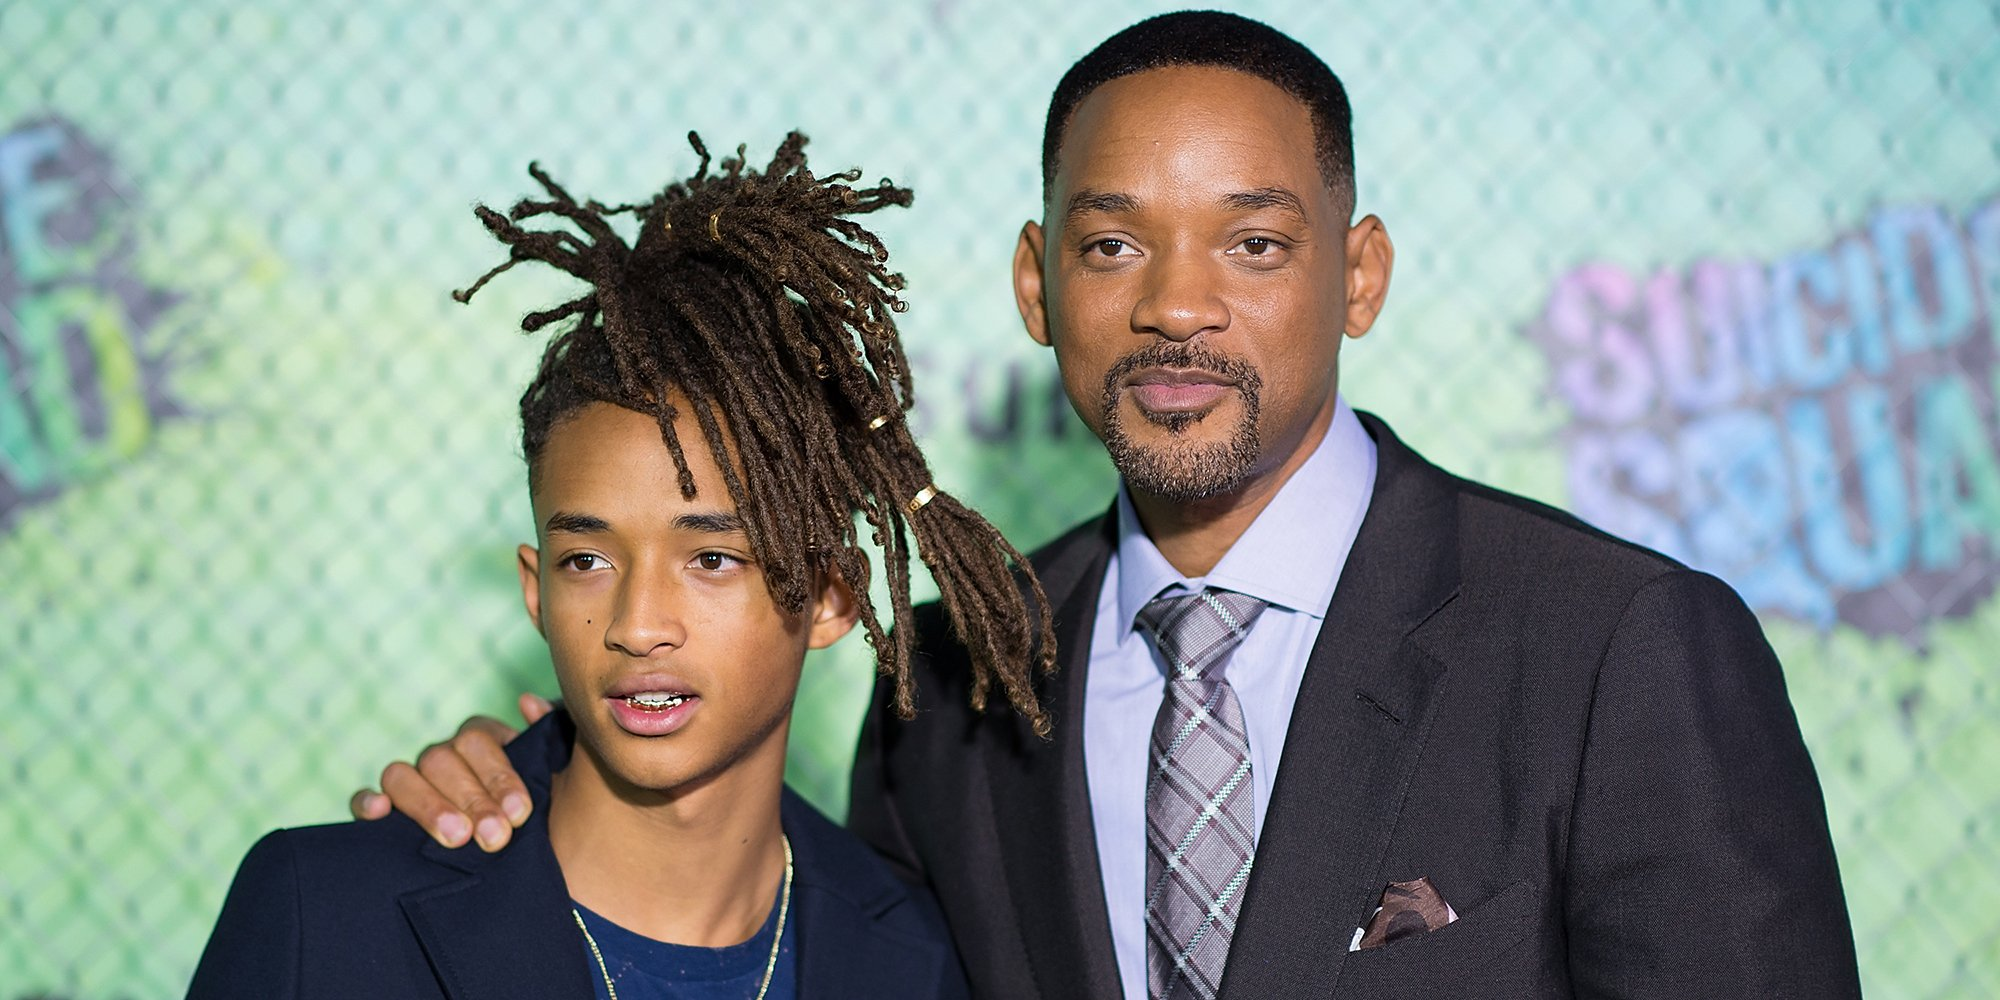 1492024778-hbz-will-jaden-smith-index